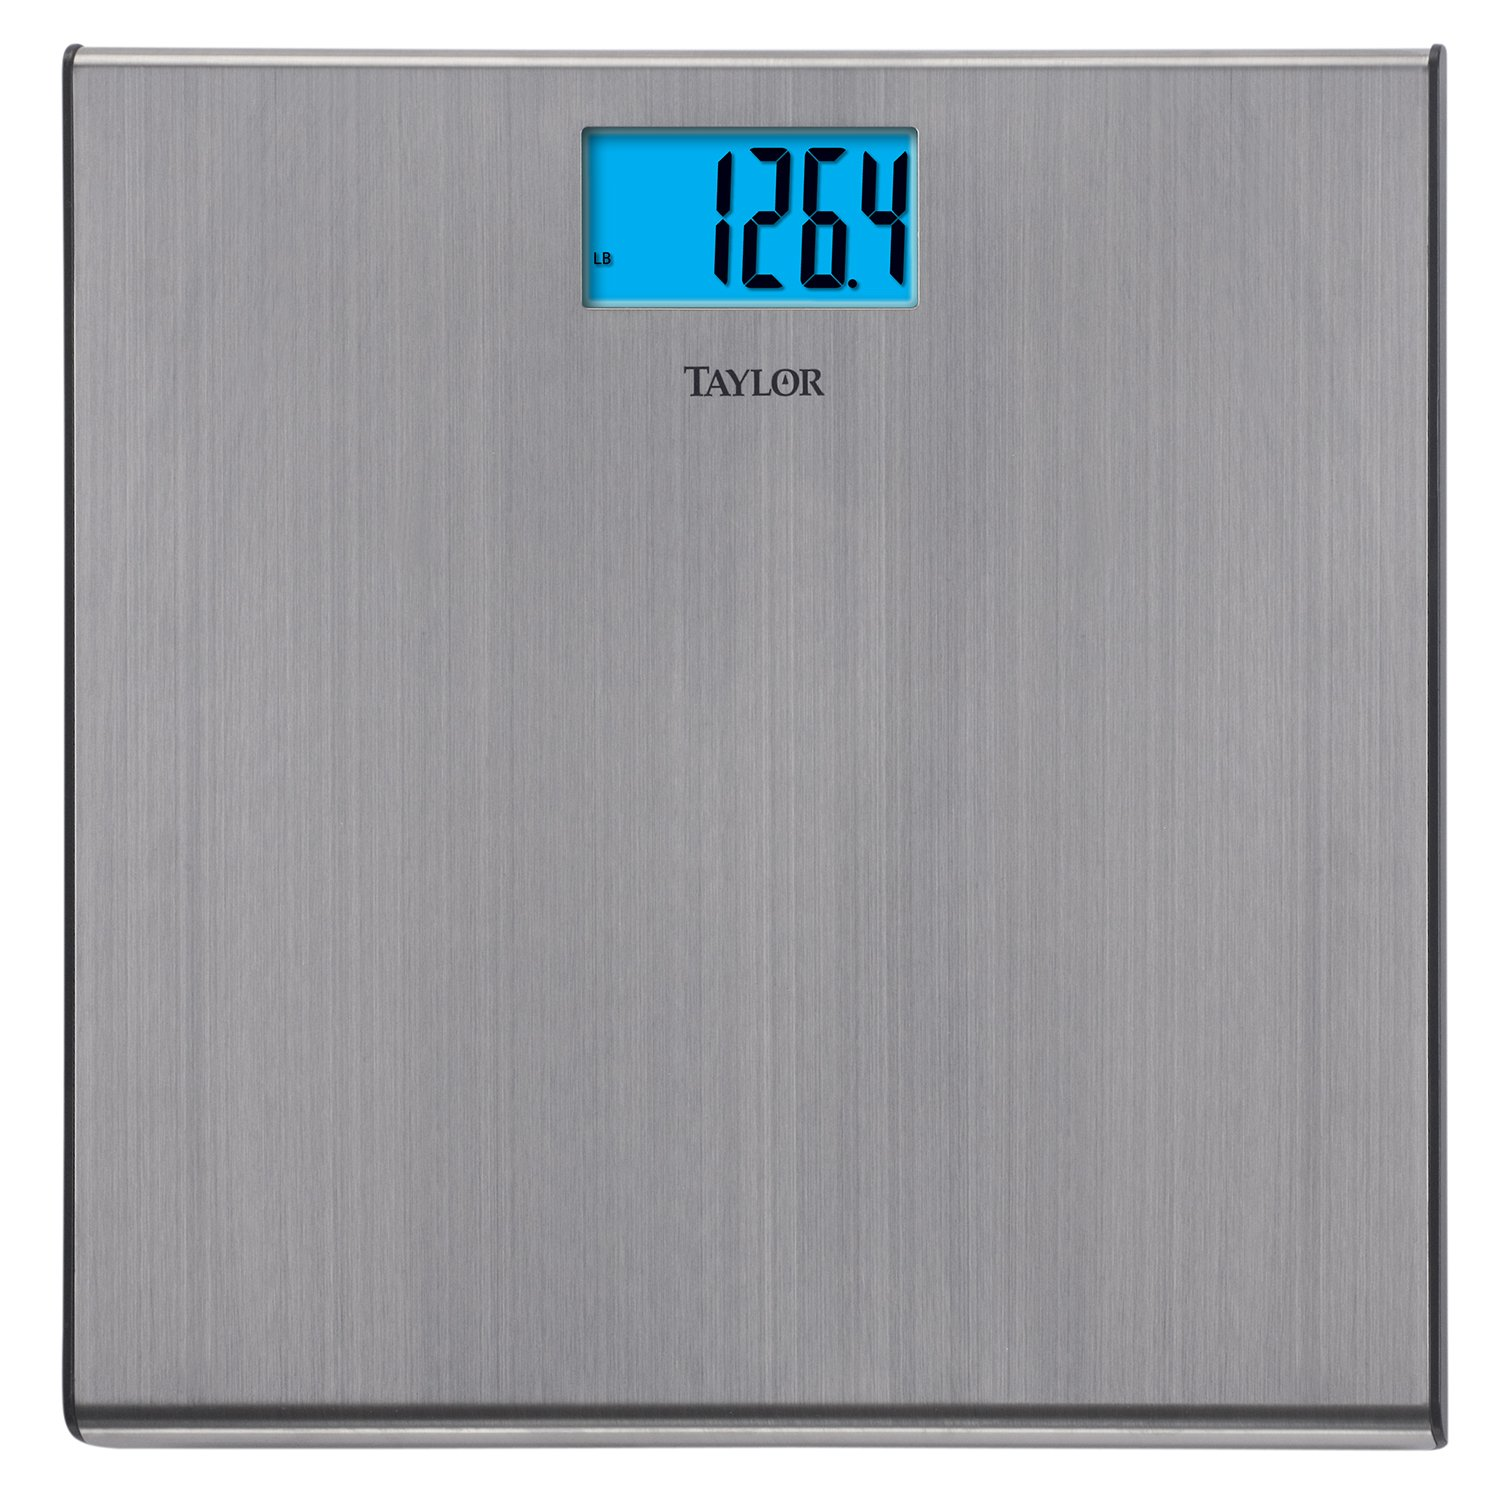 Taylor Precision Products Stainless Steel Electronic Scale